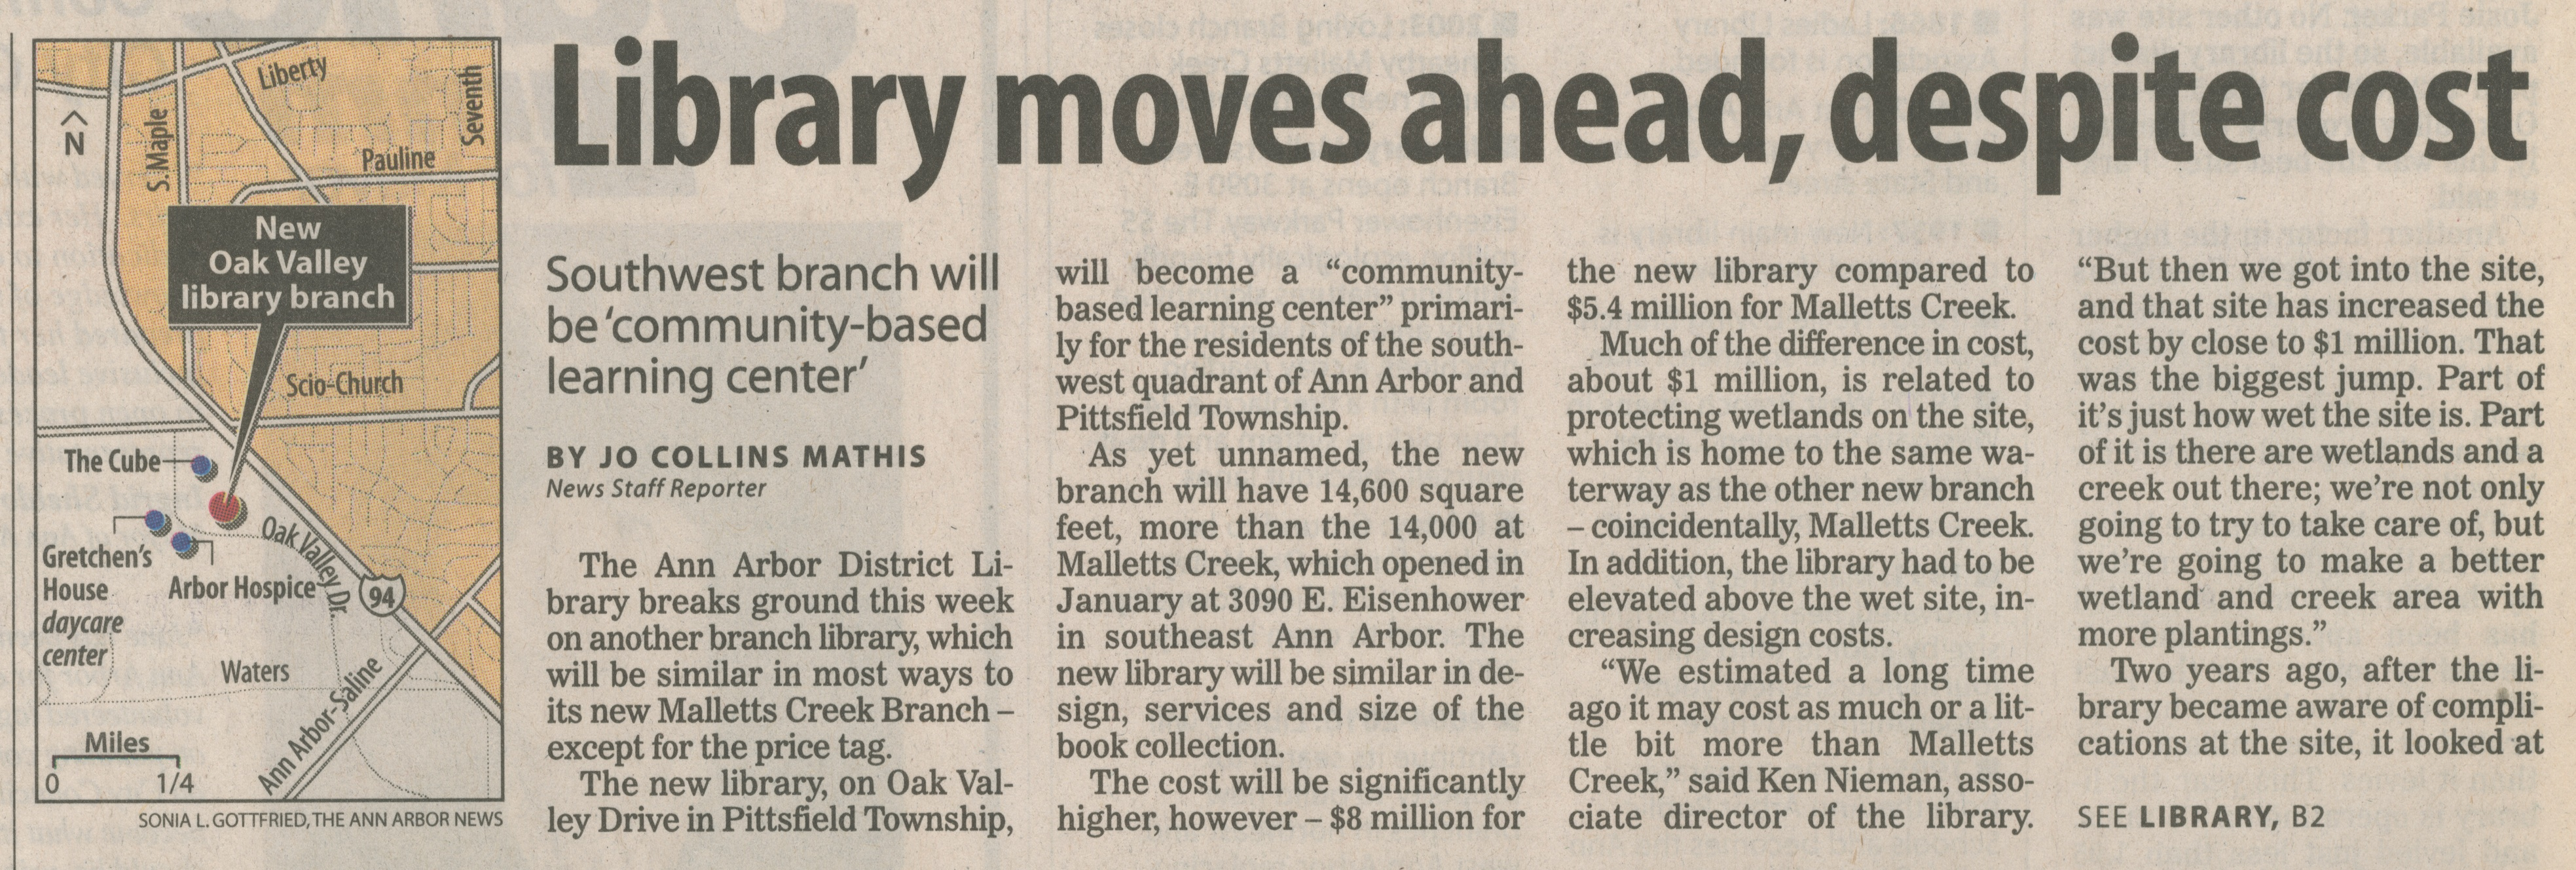 Library Moves Ahead, Despite Cost image